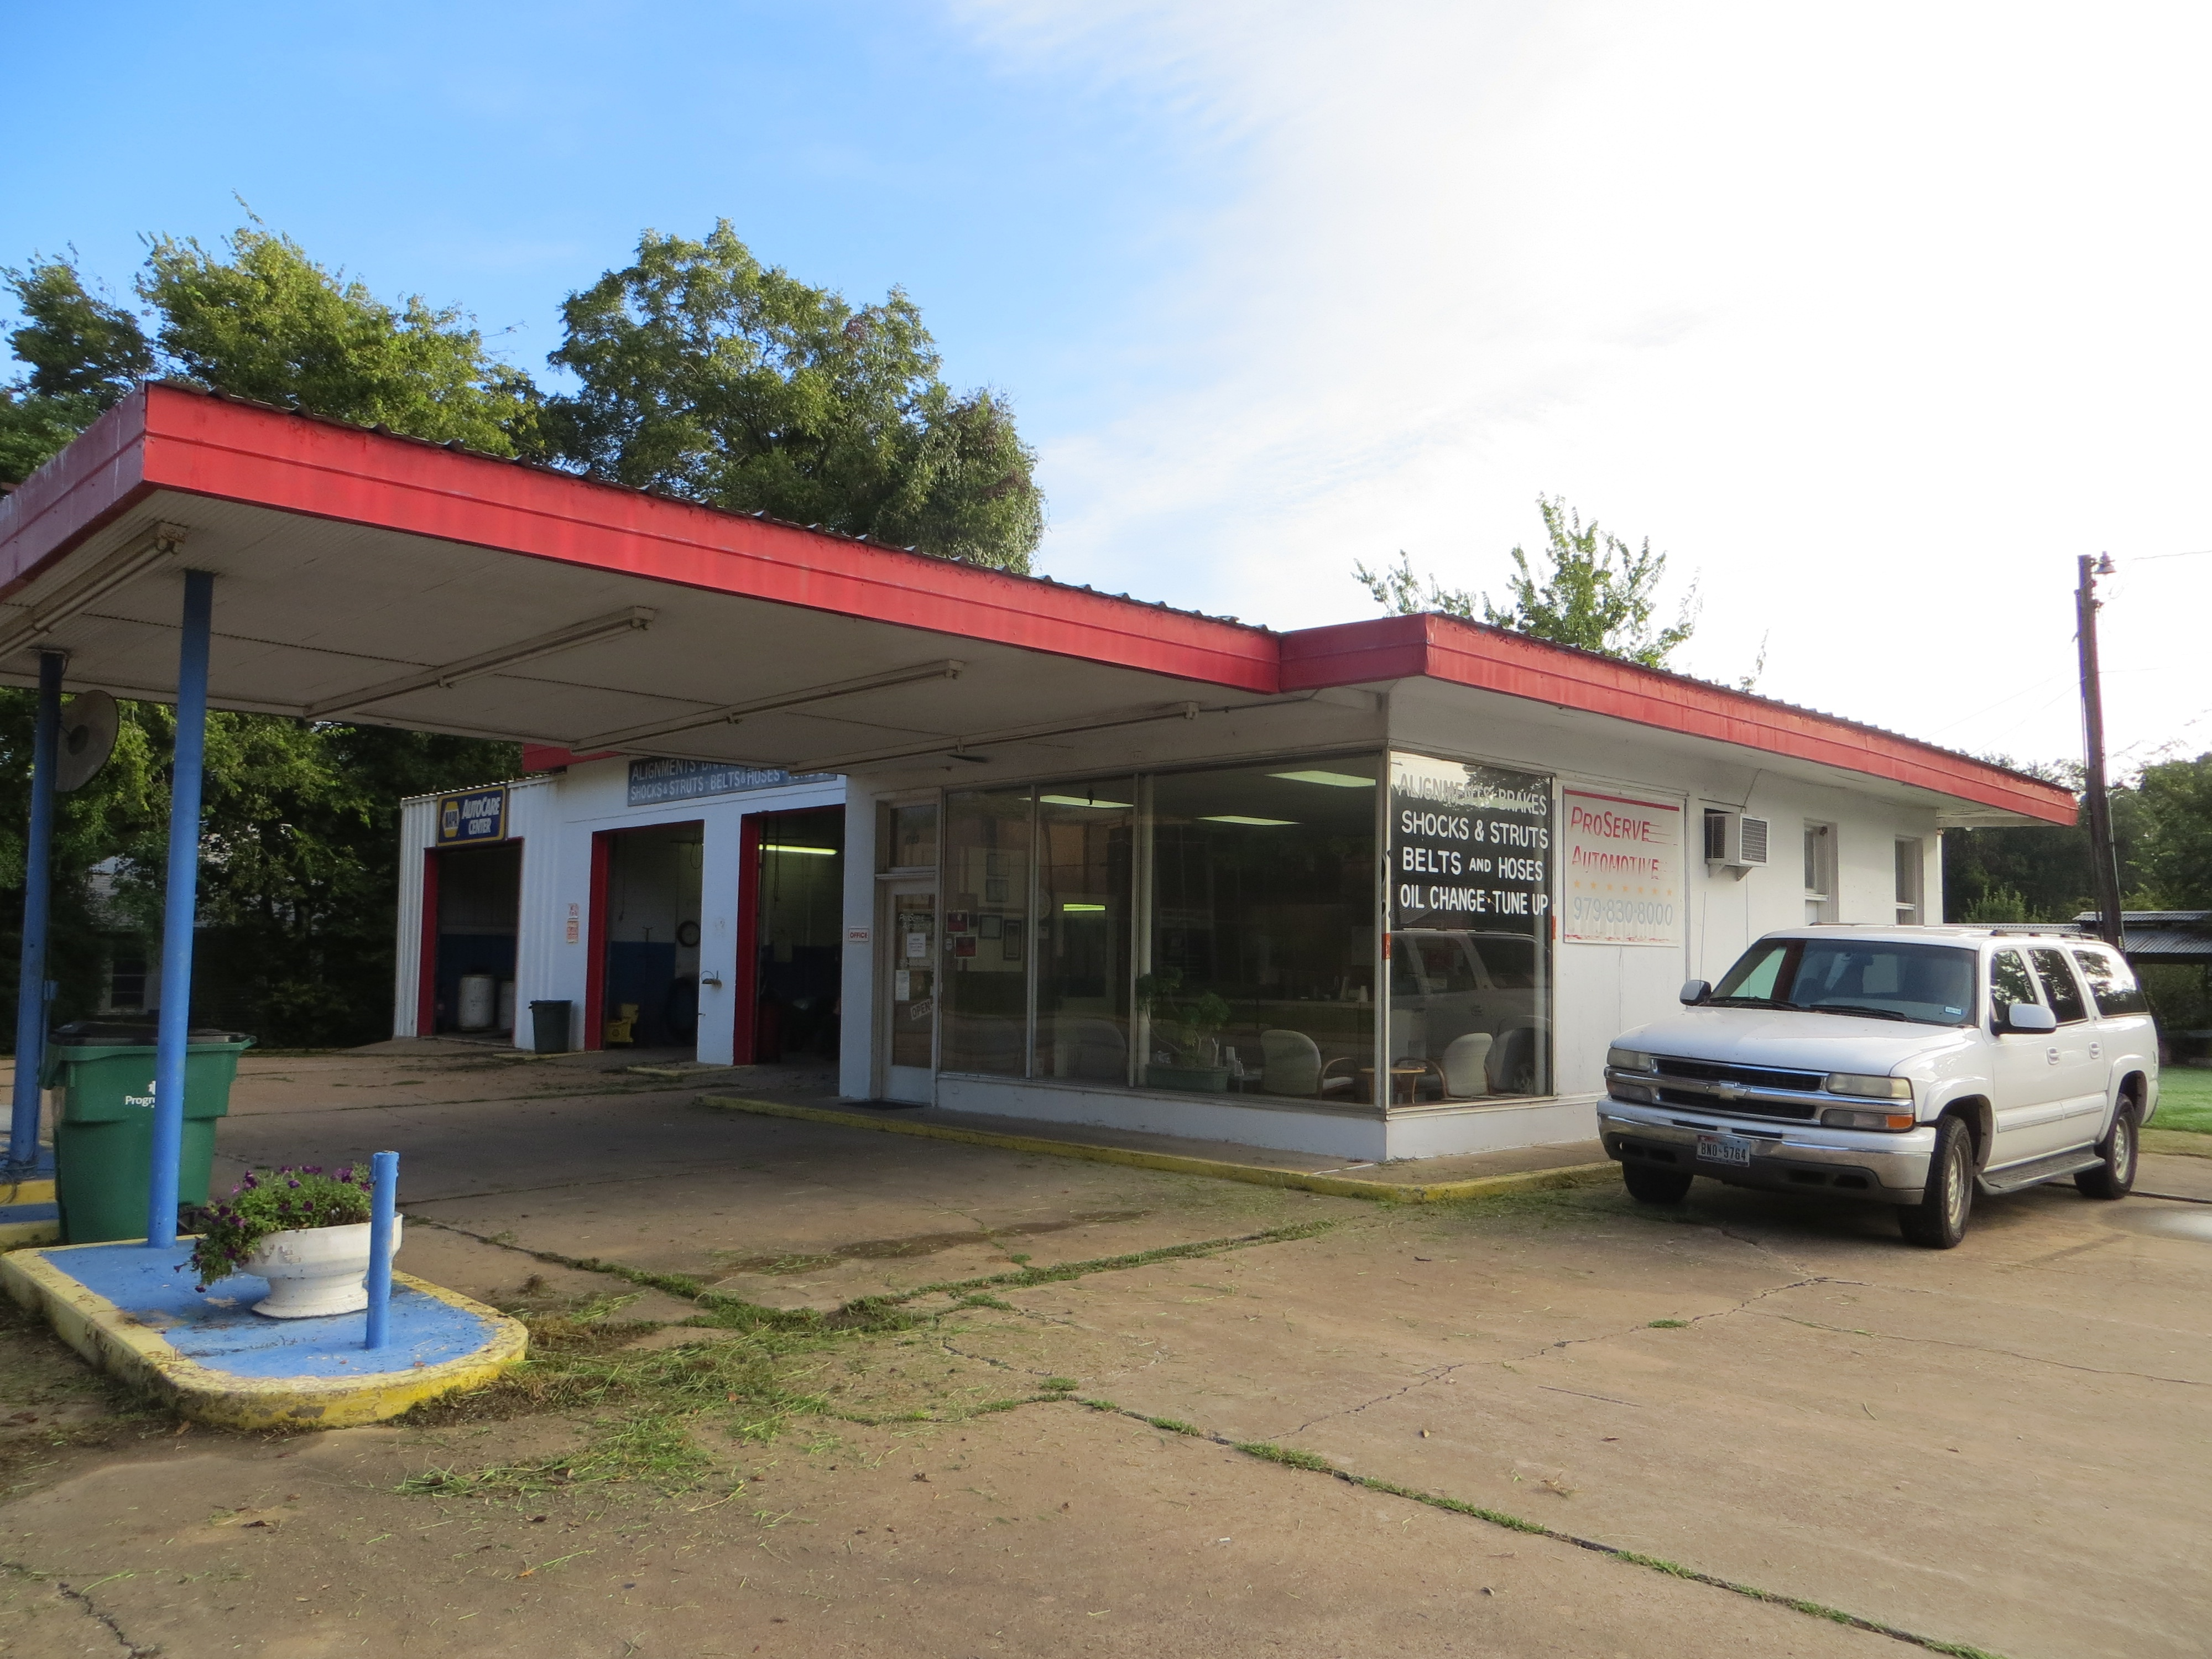 High Quality Automotive Services Shop in Southeast Texas!